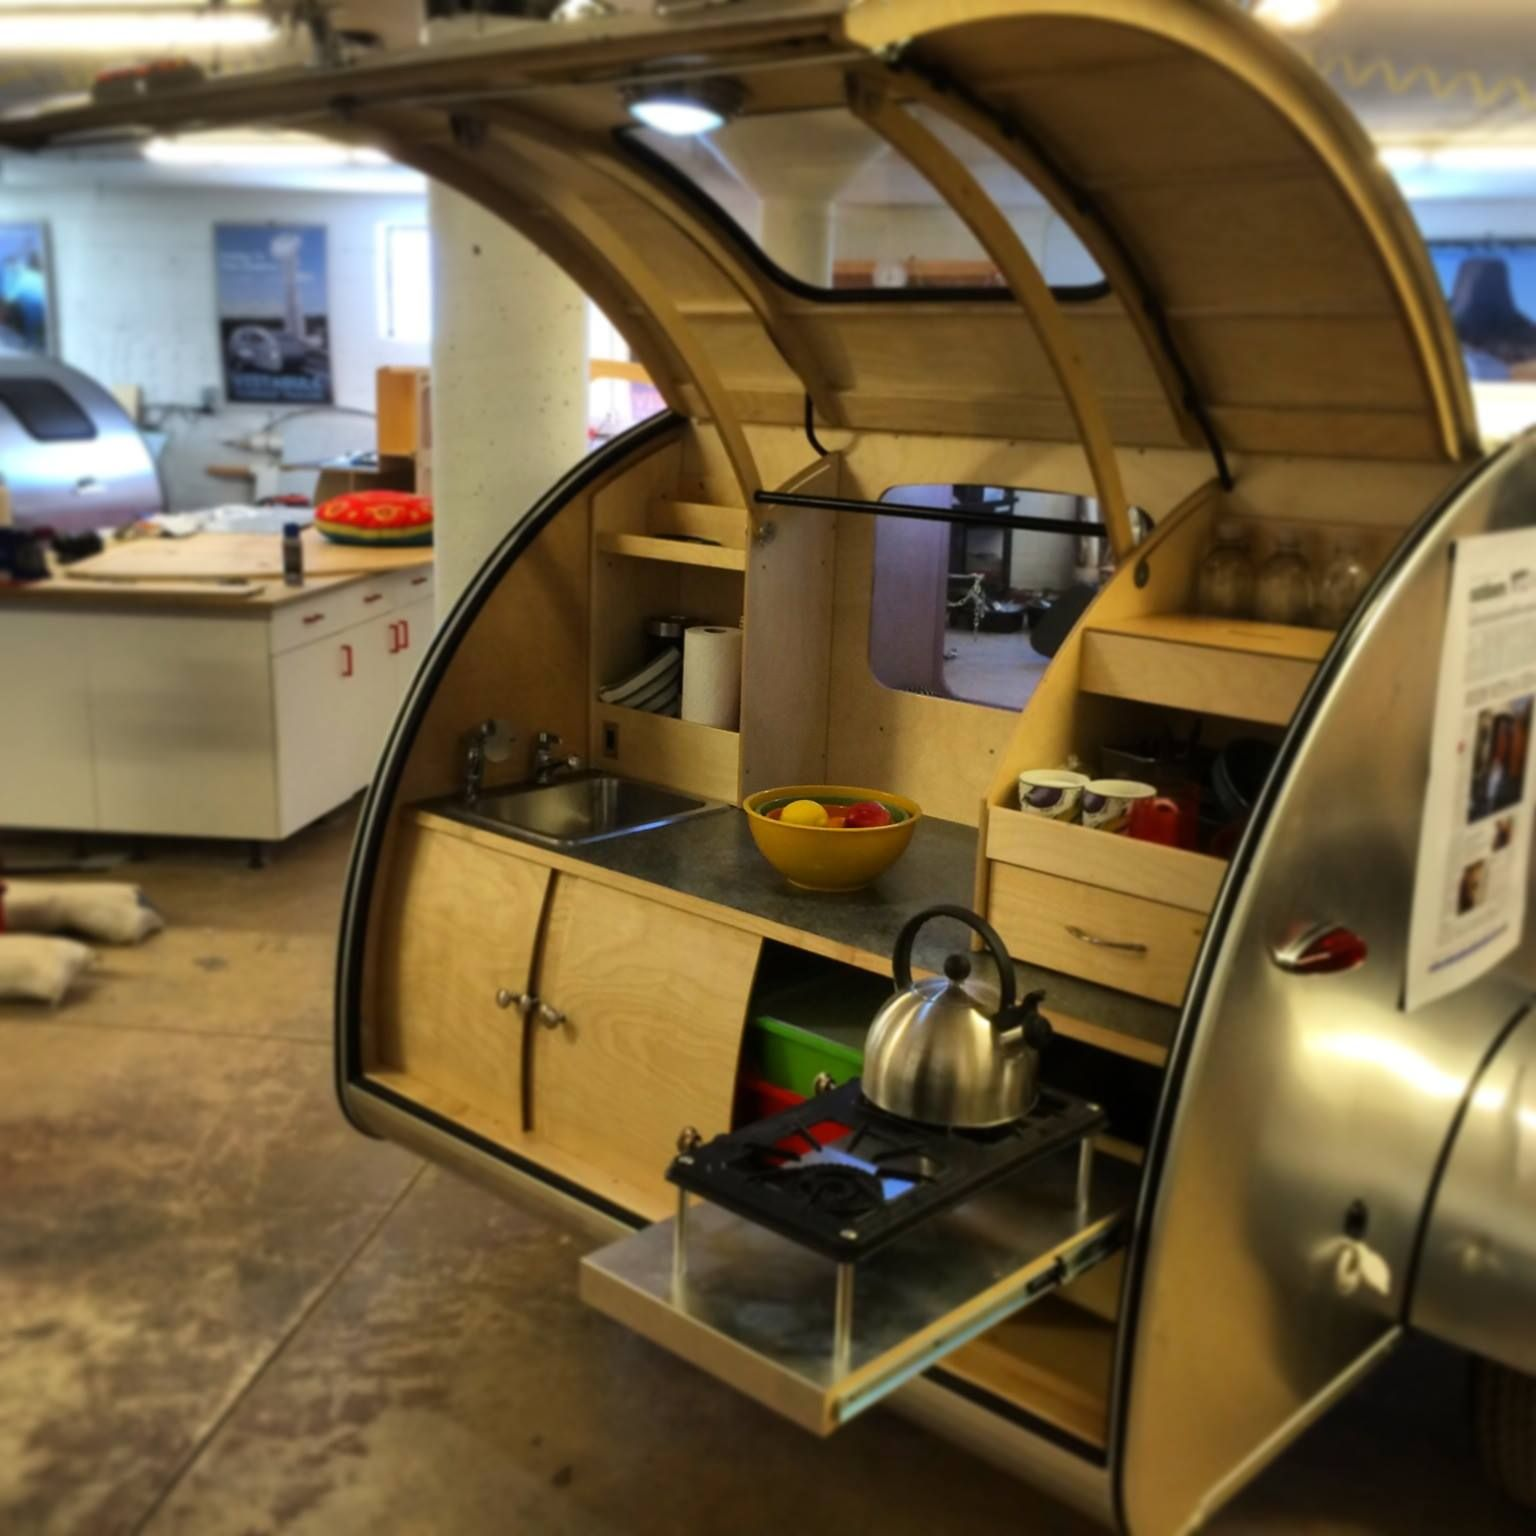 Rv Trailers: Teardrops, Campers And Camping